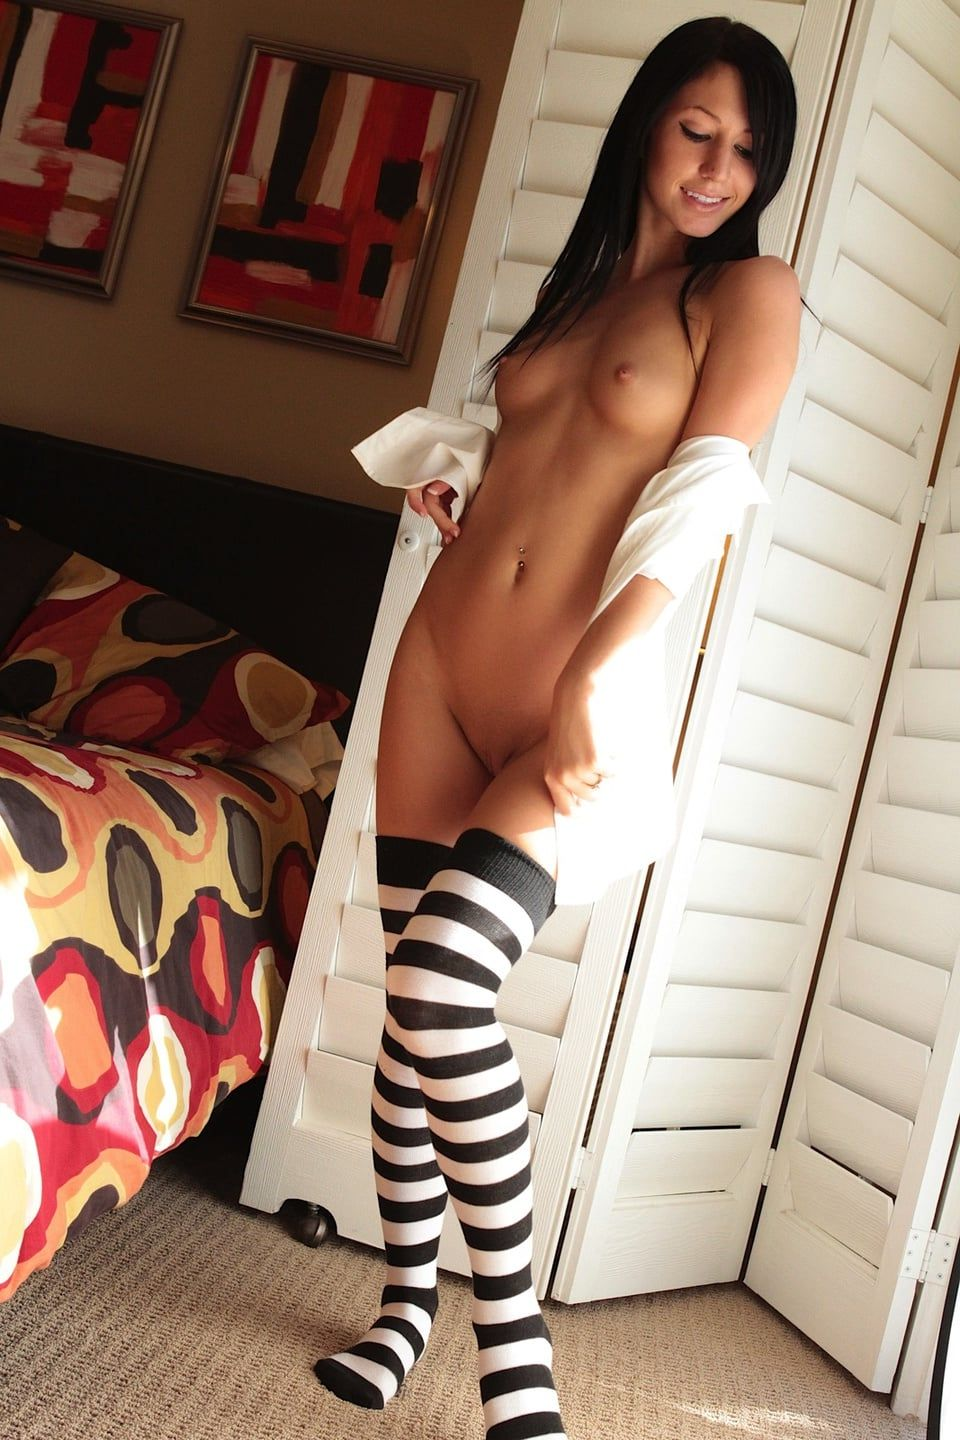 Naked girls knee high socks